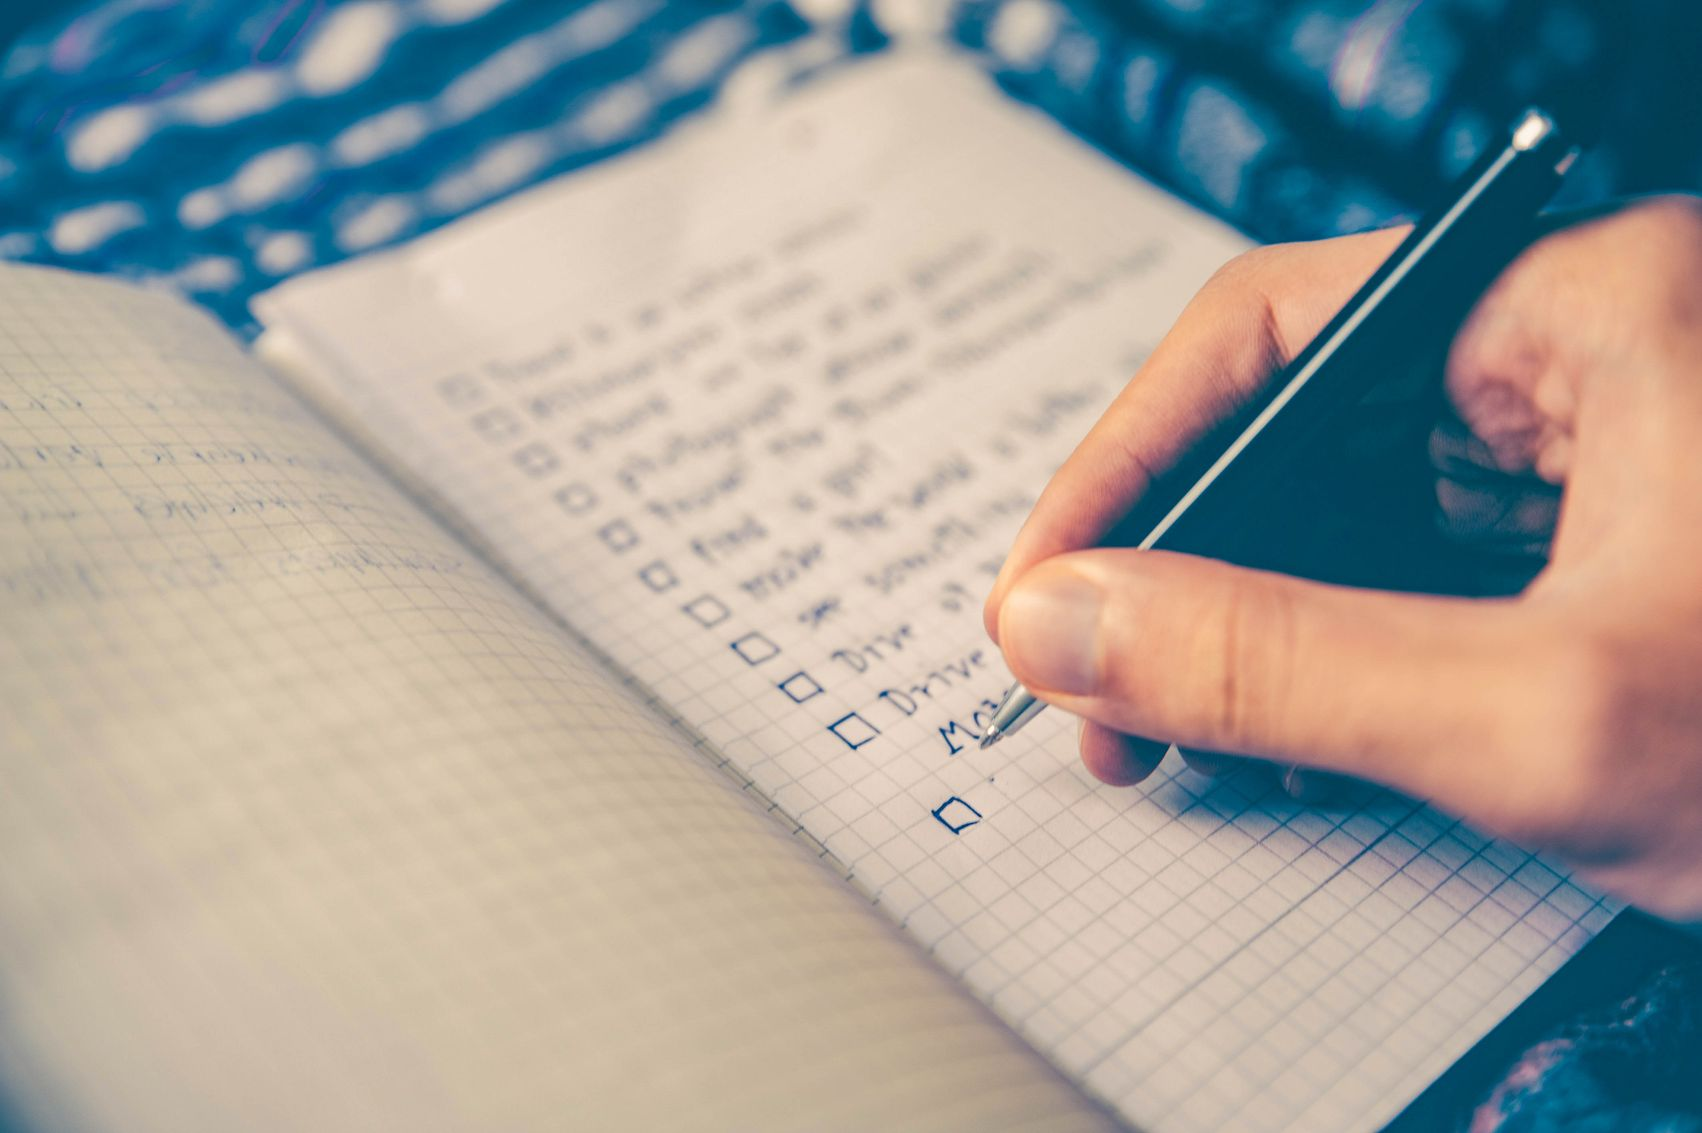 Writing a to-do list on a notebook to be more productive